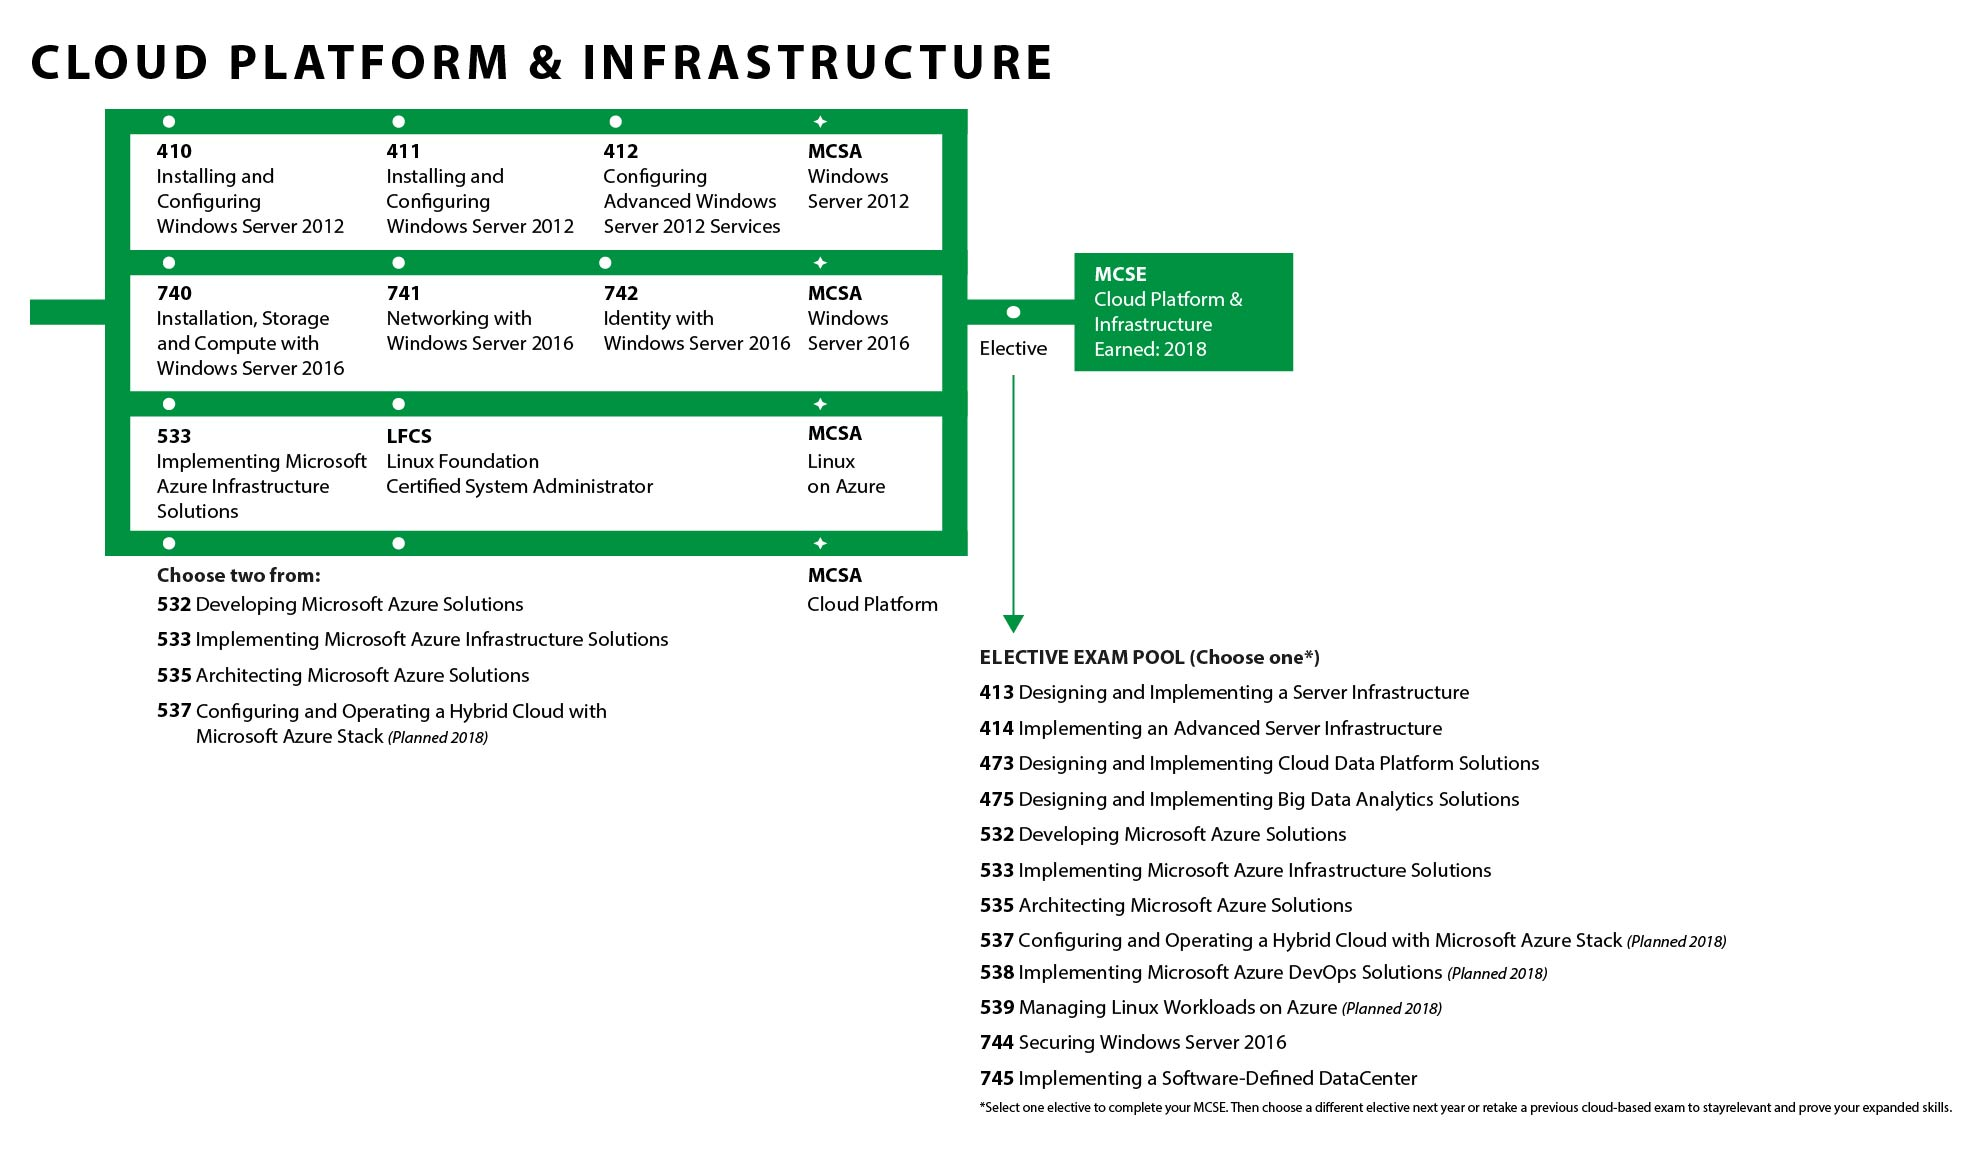 Microsoft Cloud Platform & Infrastructure Path